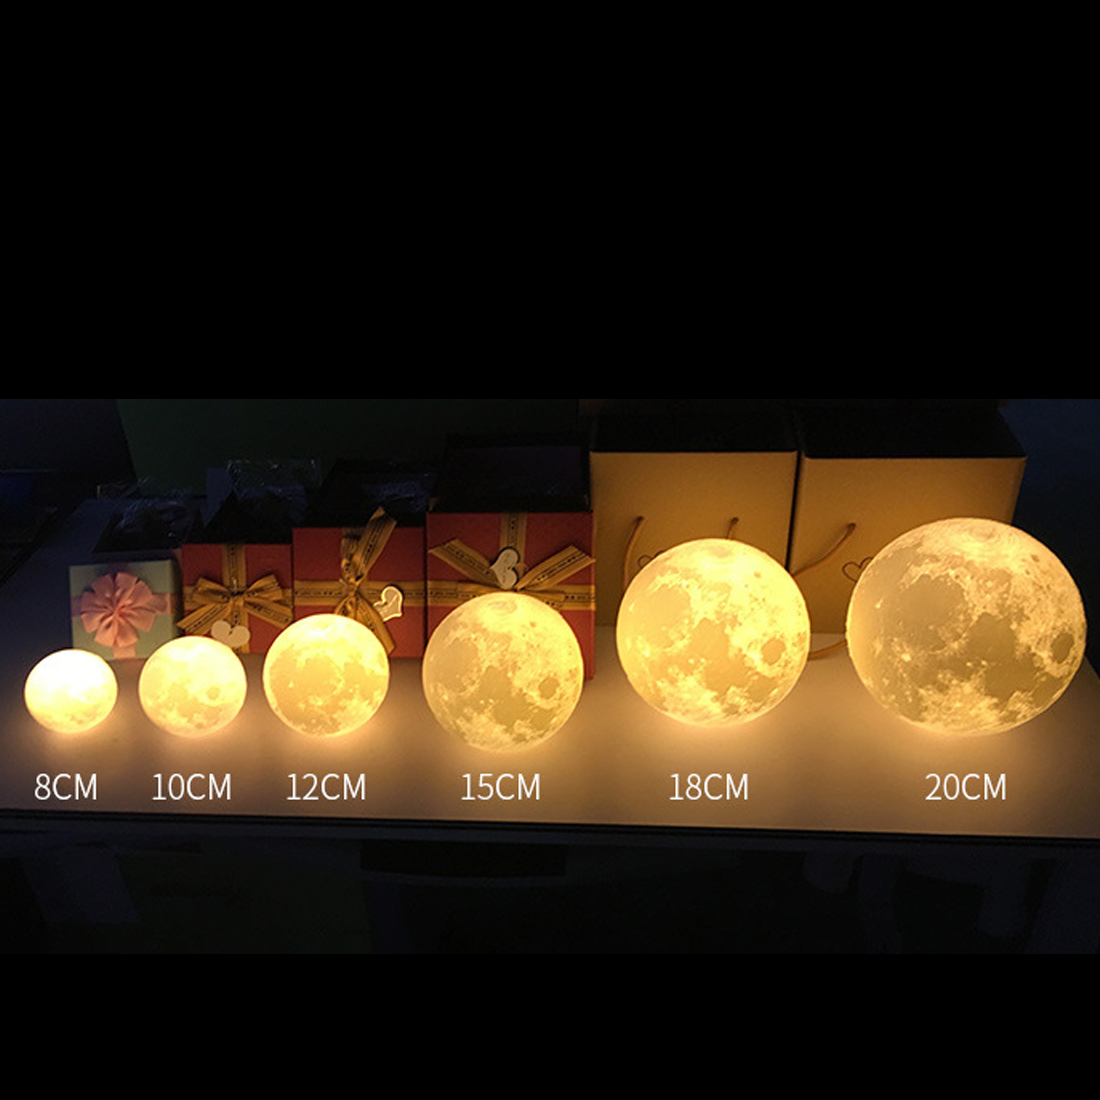 Rechargeable Moon Lamp 16 Color Change 3D Light Touch Switch 3D Print Lamp Moon Bedroom Bookcase Night Light Creative Gifts 3d print moon lamp rechargeable night light rgb color change touch switch bedroom 3d lunar moon lamp home decor creative gift